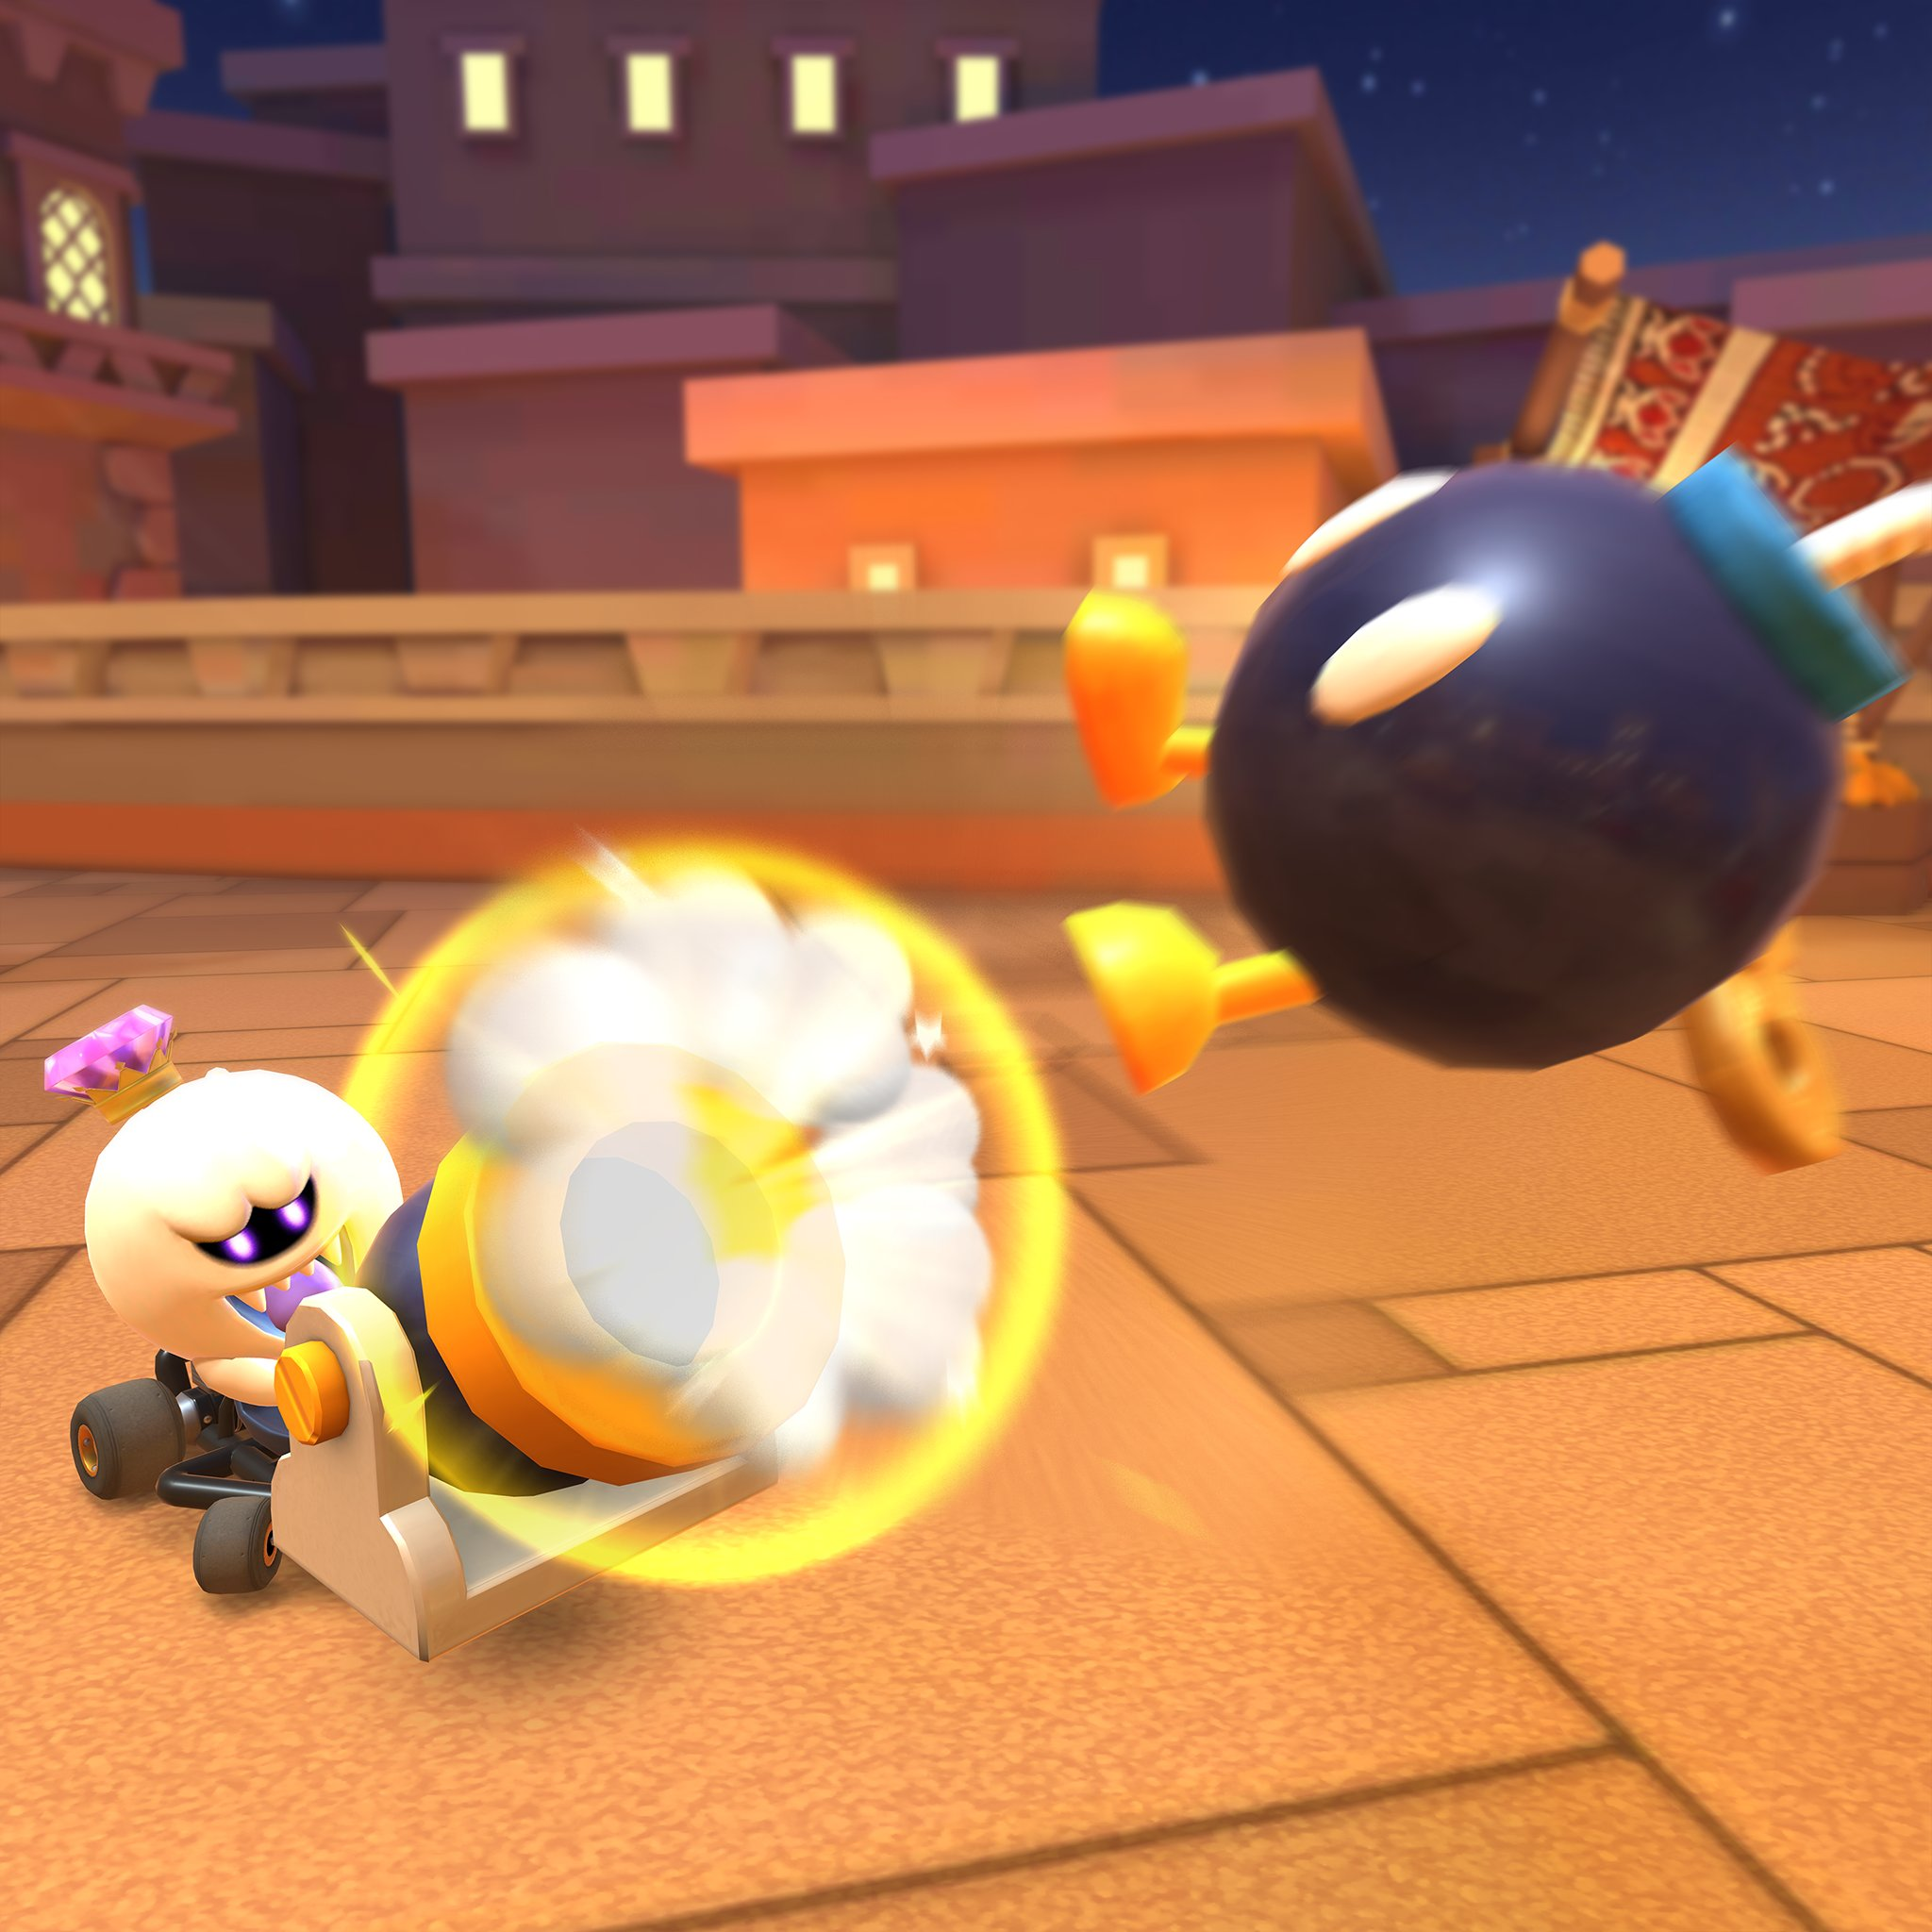 Mario Kart Tour On Twitter Clever Use Of The Bob Omb Cannon Can Leave Your Opponents Scrambling Off Track As You Cruise On By Mariokarttour